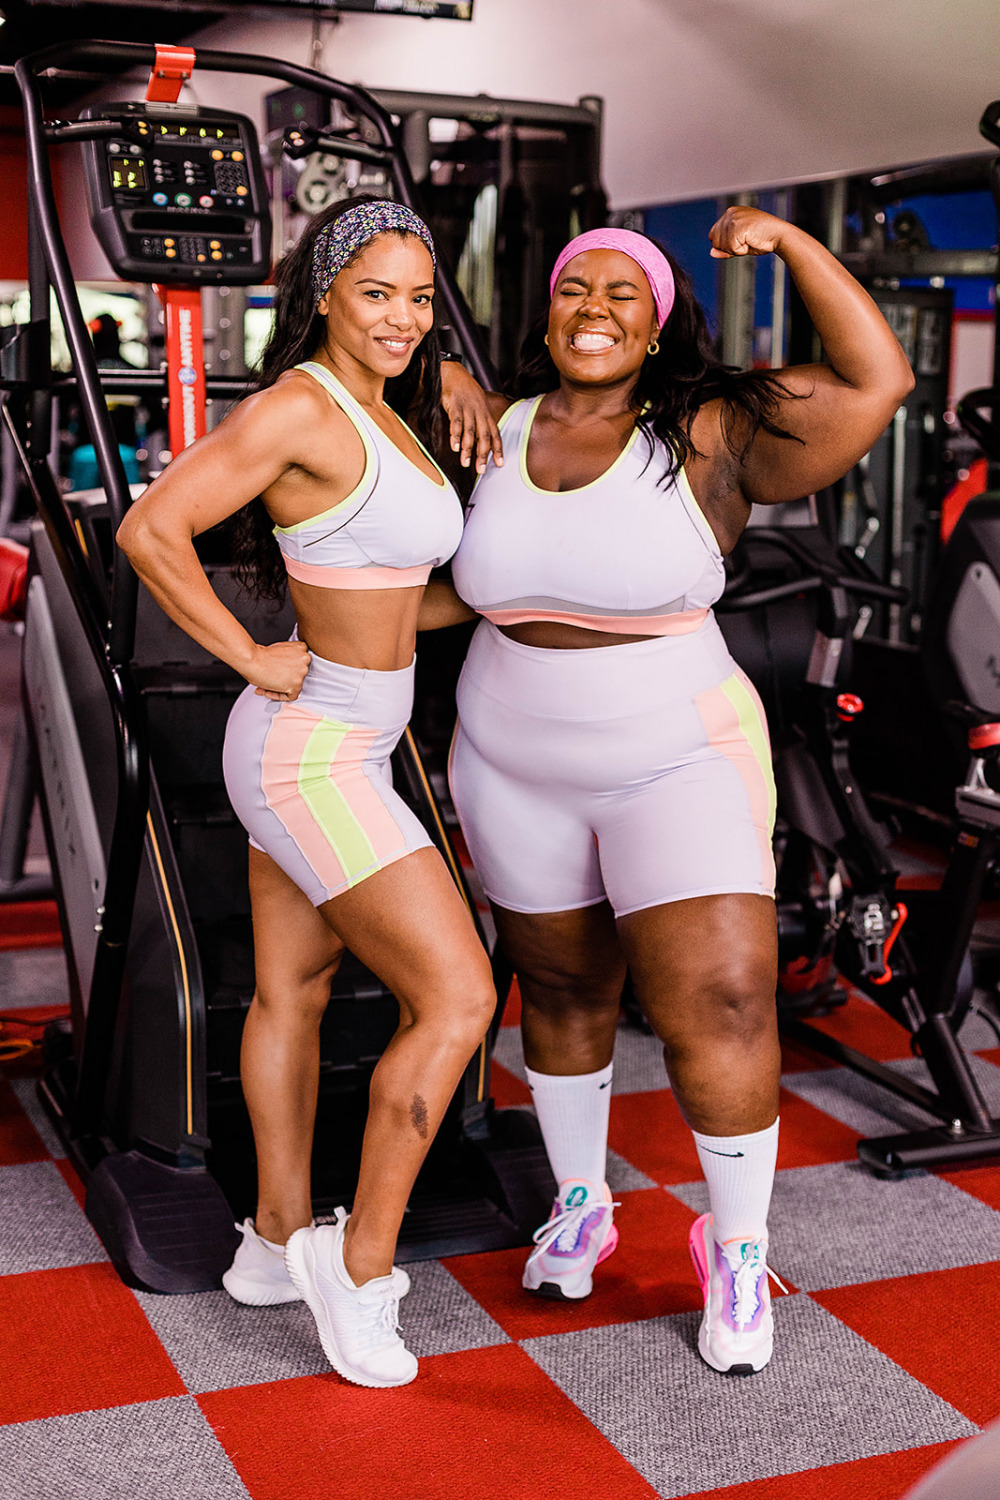 Fabletics Model, Two women Working out at the Gym, All bodies at the gym, Body positive, Fitness for all, movement for all